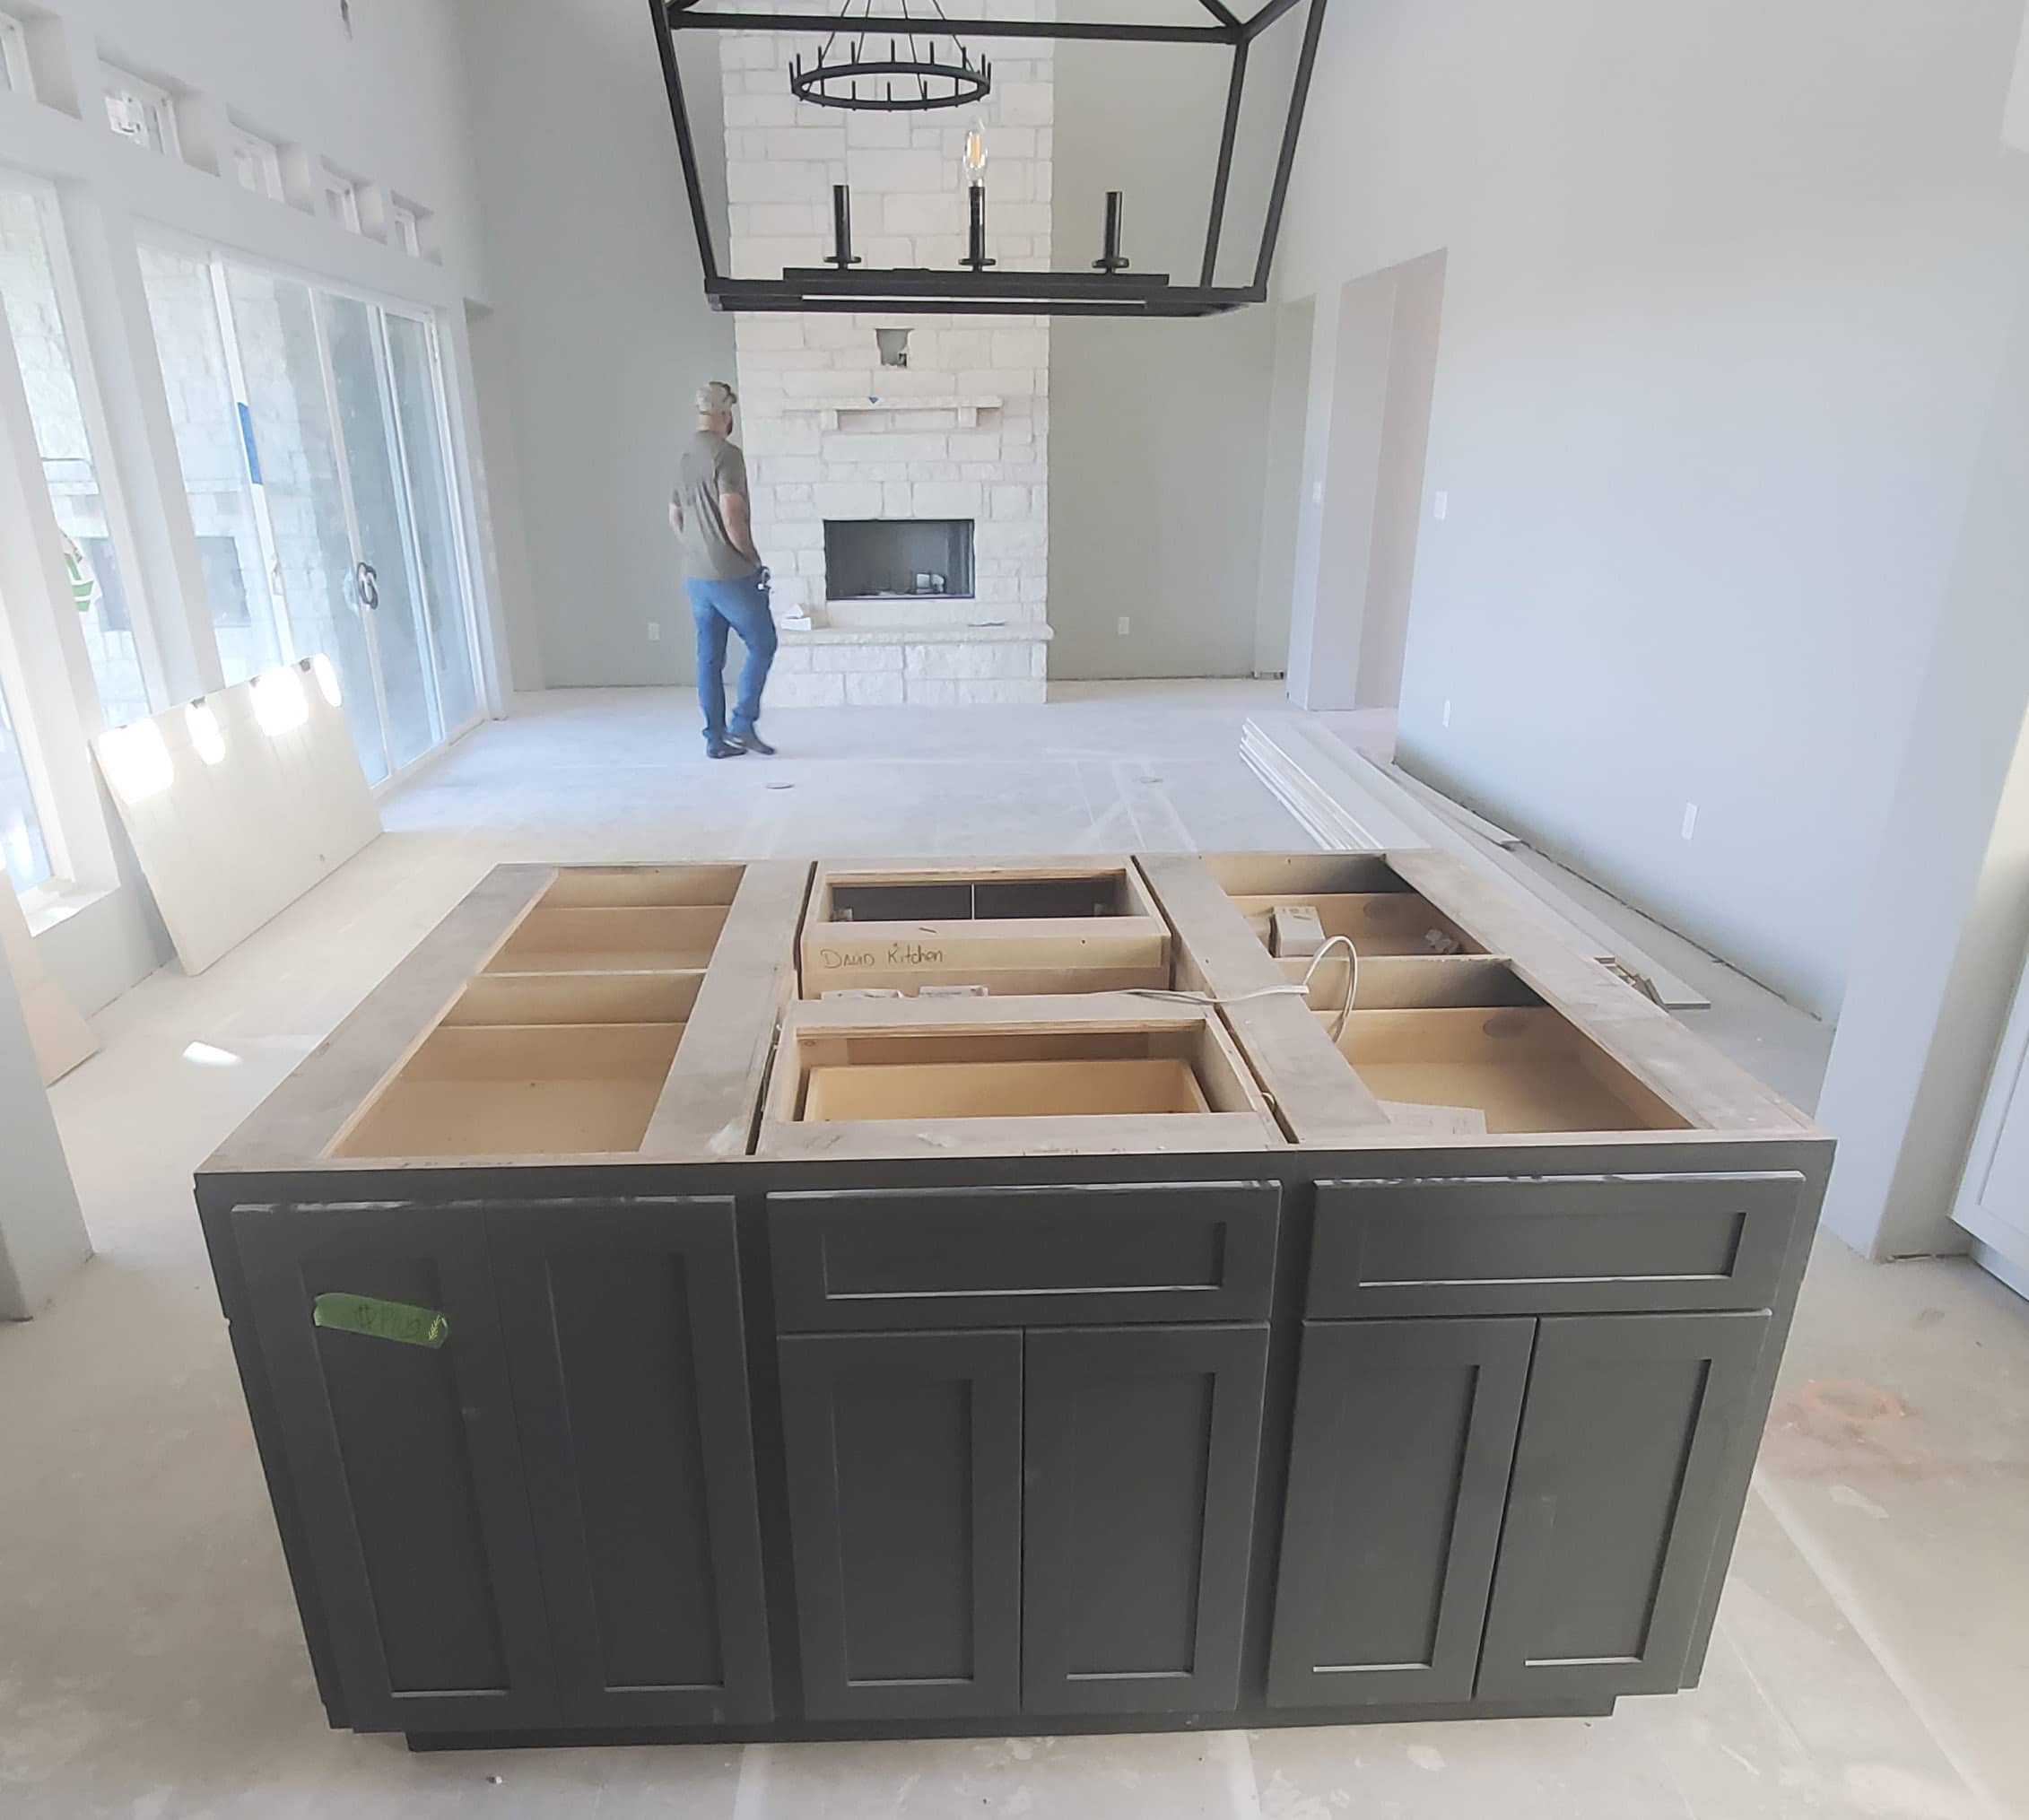 Unfinished kitchen cabinets in foreground, man is green shirt and jeans in background